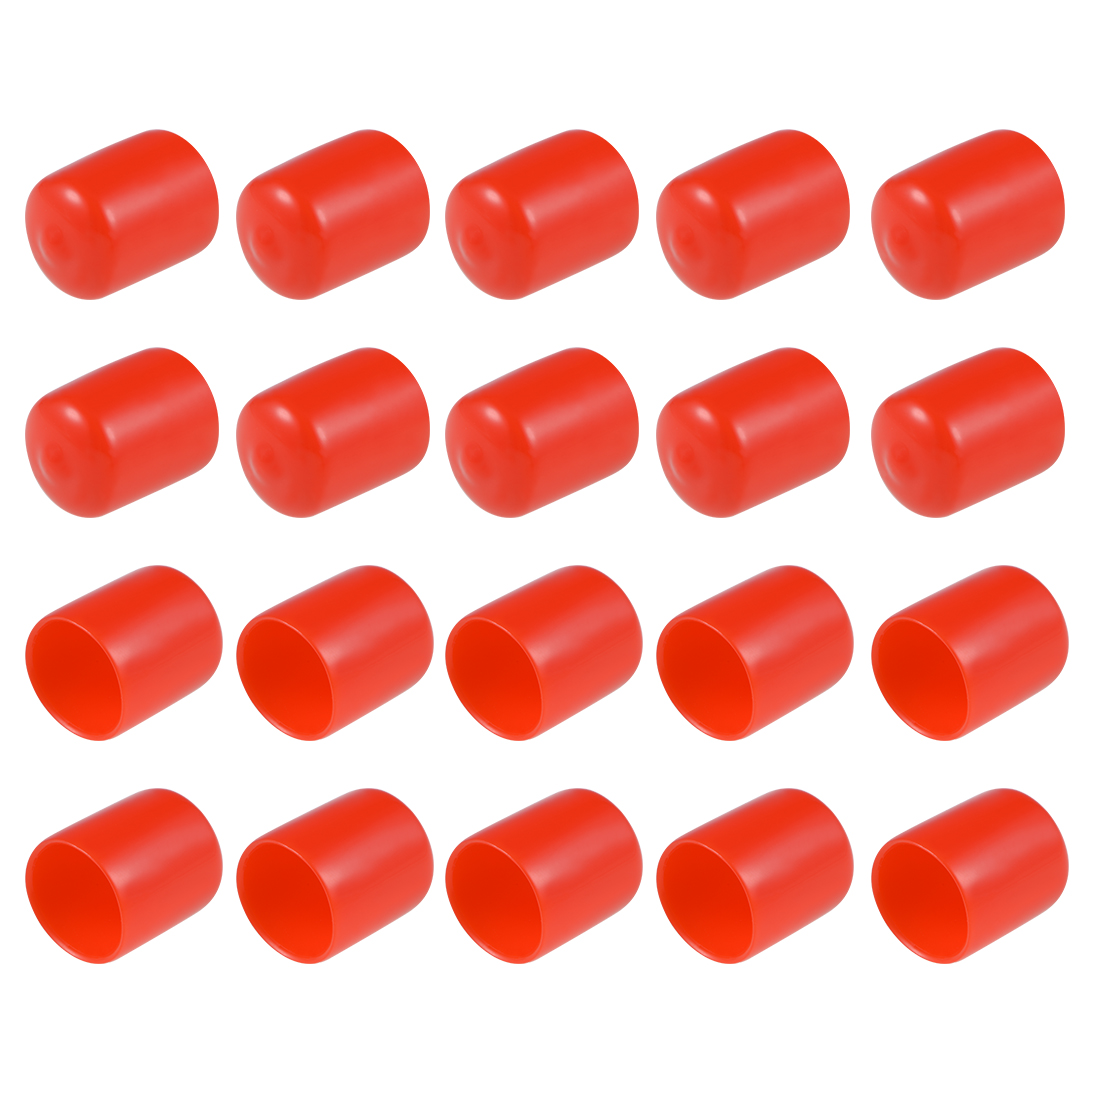 Screw Thread Protectors, 20mm ID 30mm Length Round End Cap Cover Red 20pcs